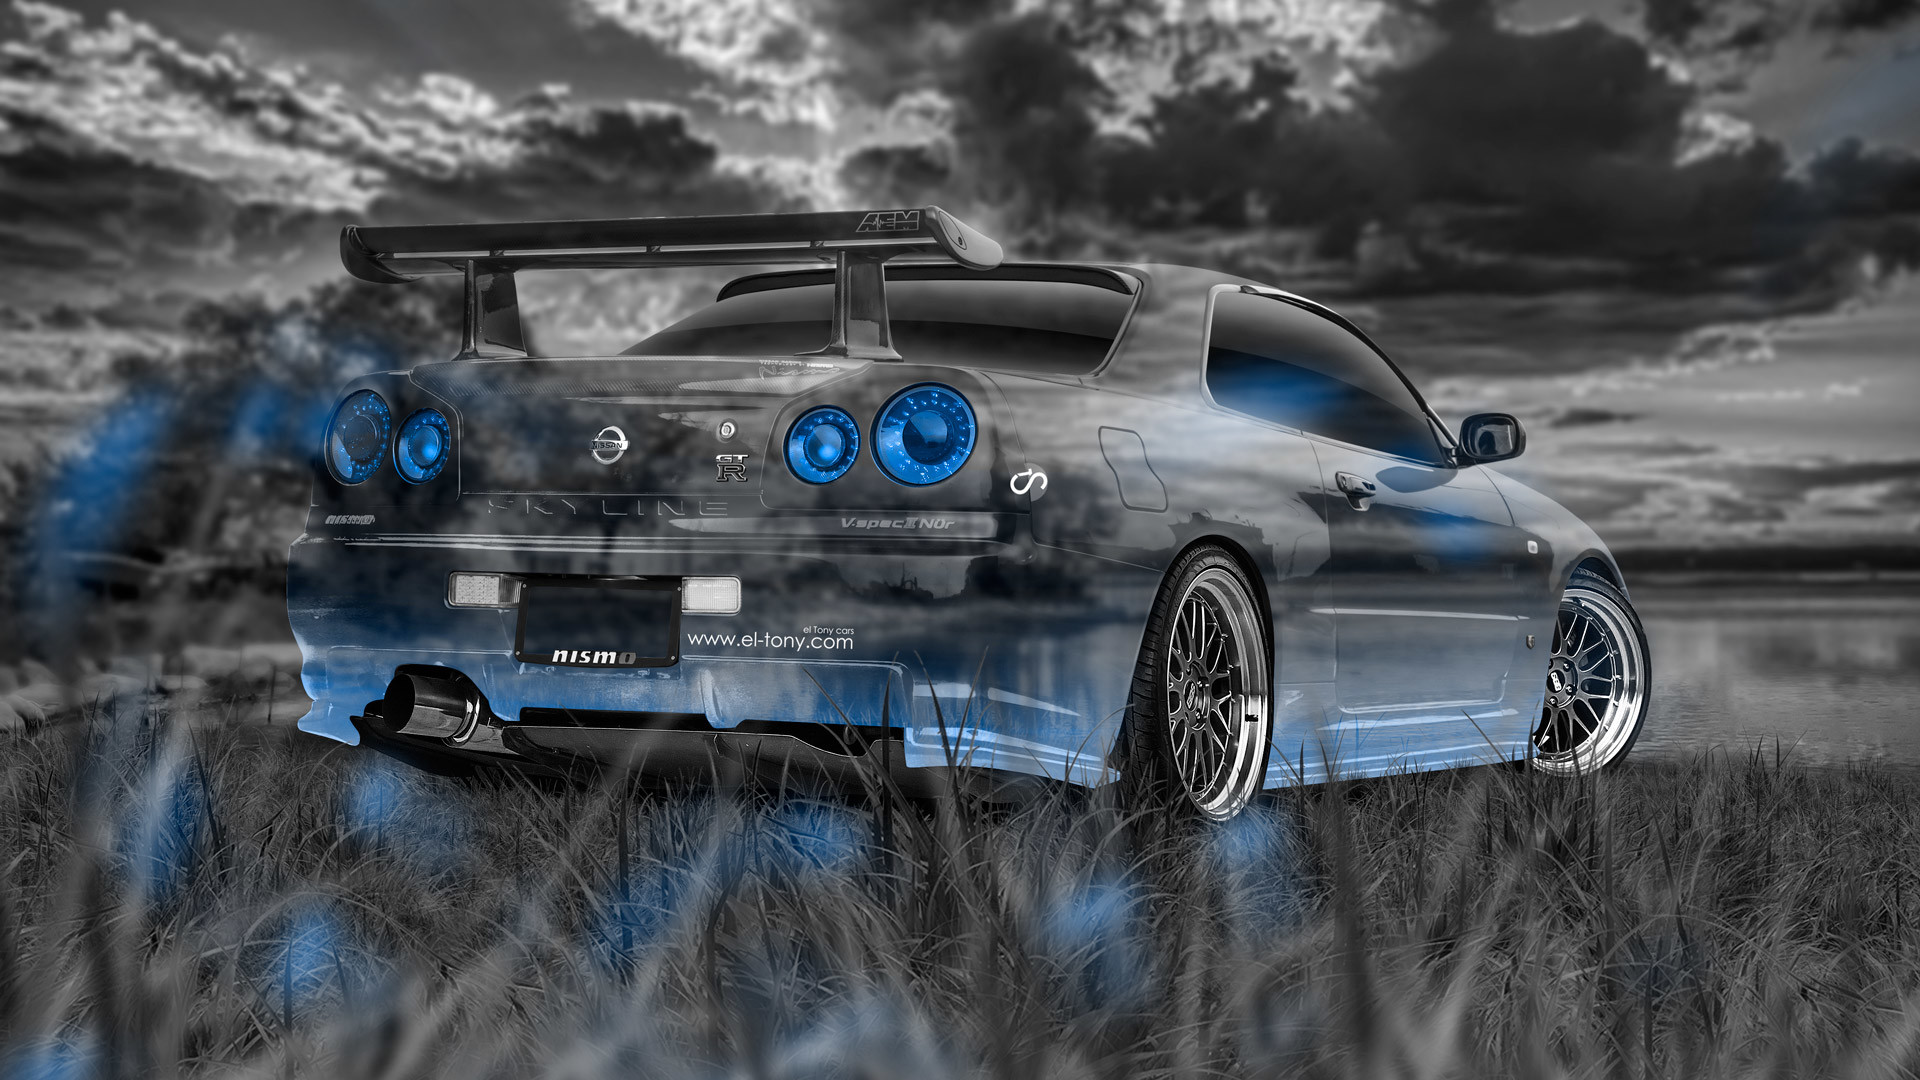 1920x1080 Nissan gtr godzilla clipart ClipartFox 1600×1200 Nissan Skyline GTR R34  Wallpapers (51 Wallpapers) | Adorable Wallpapers | Wallpapers | Pinterest |  Godzilla ...